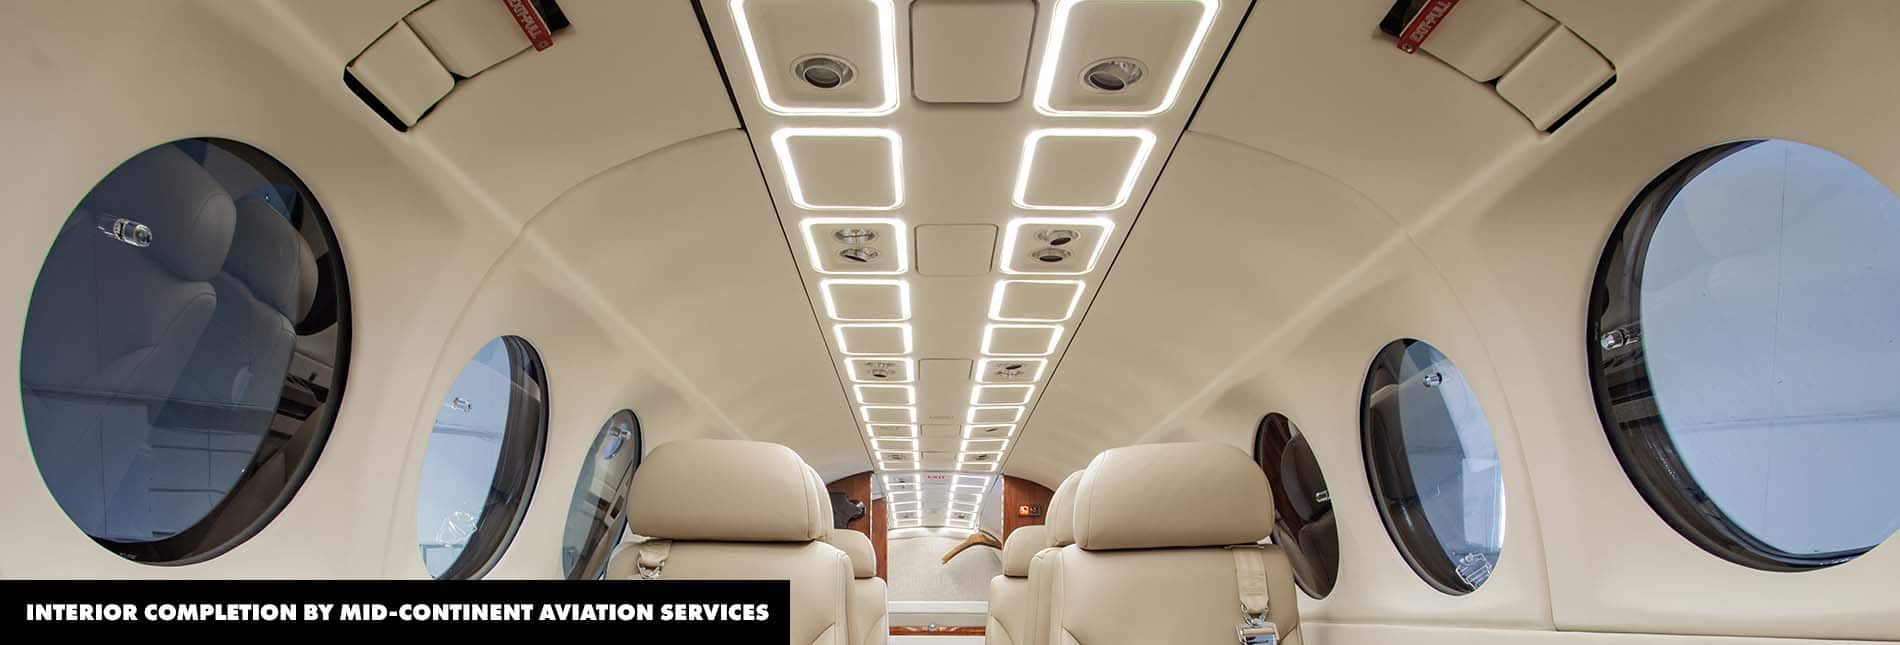 Interior King Air 300 LED Upgrade. PWI